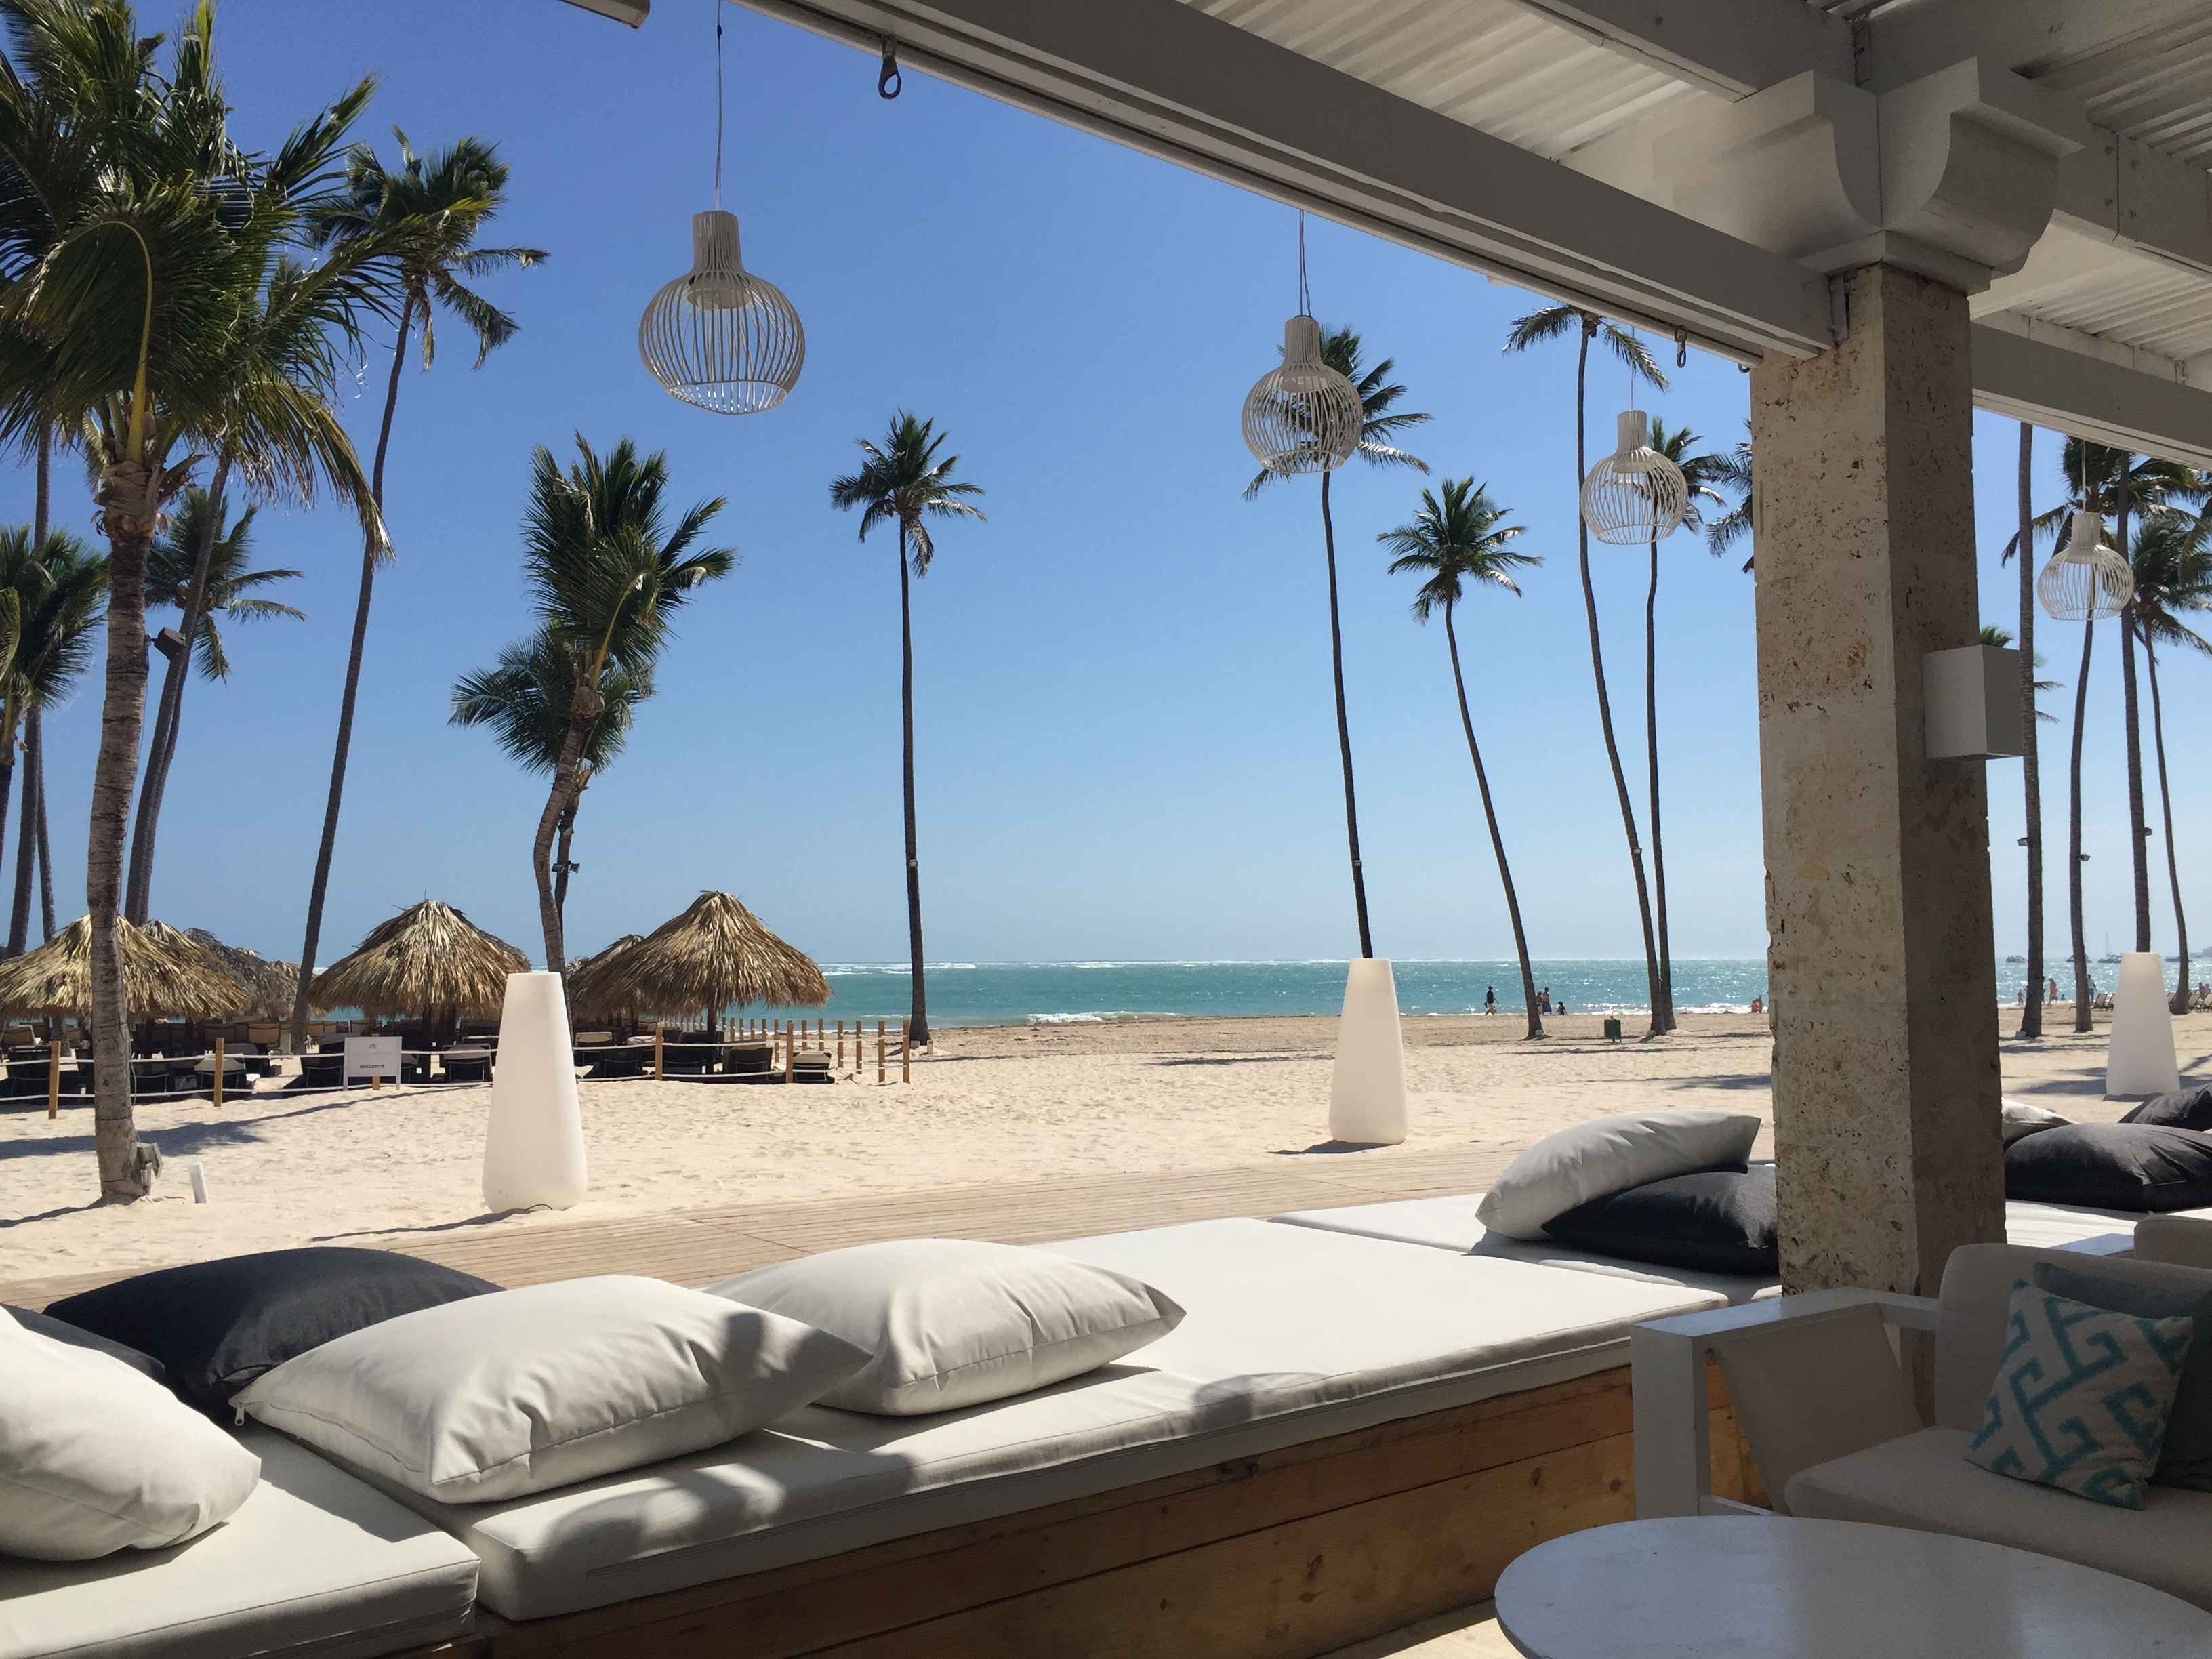 Dominican Republic Family Vacation + Tips for flying with